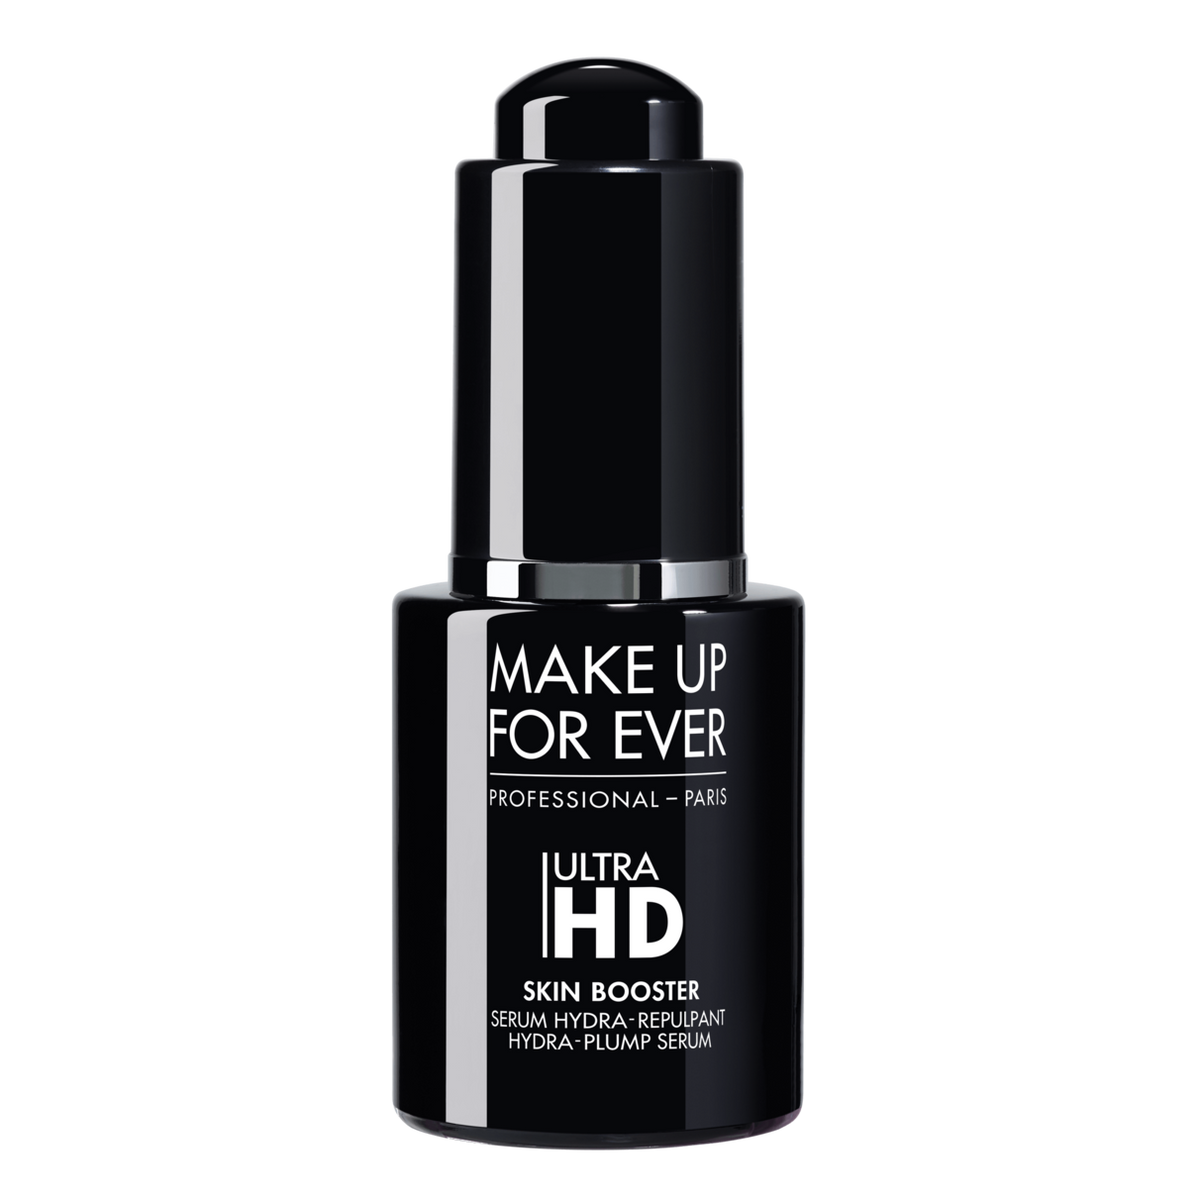 MUFE Ultra HD Skin Booster Hydra-Plump Serum